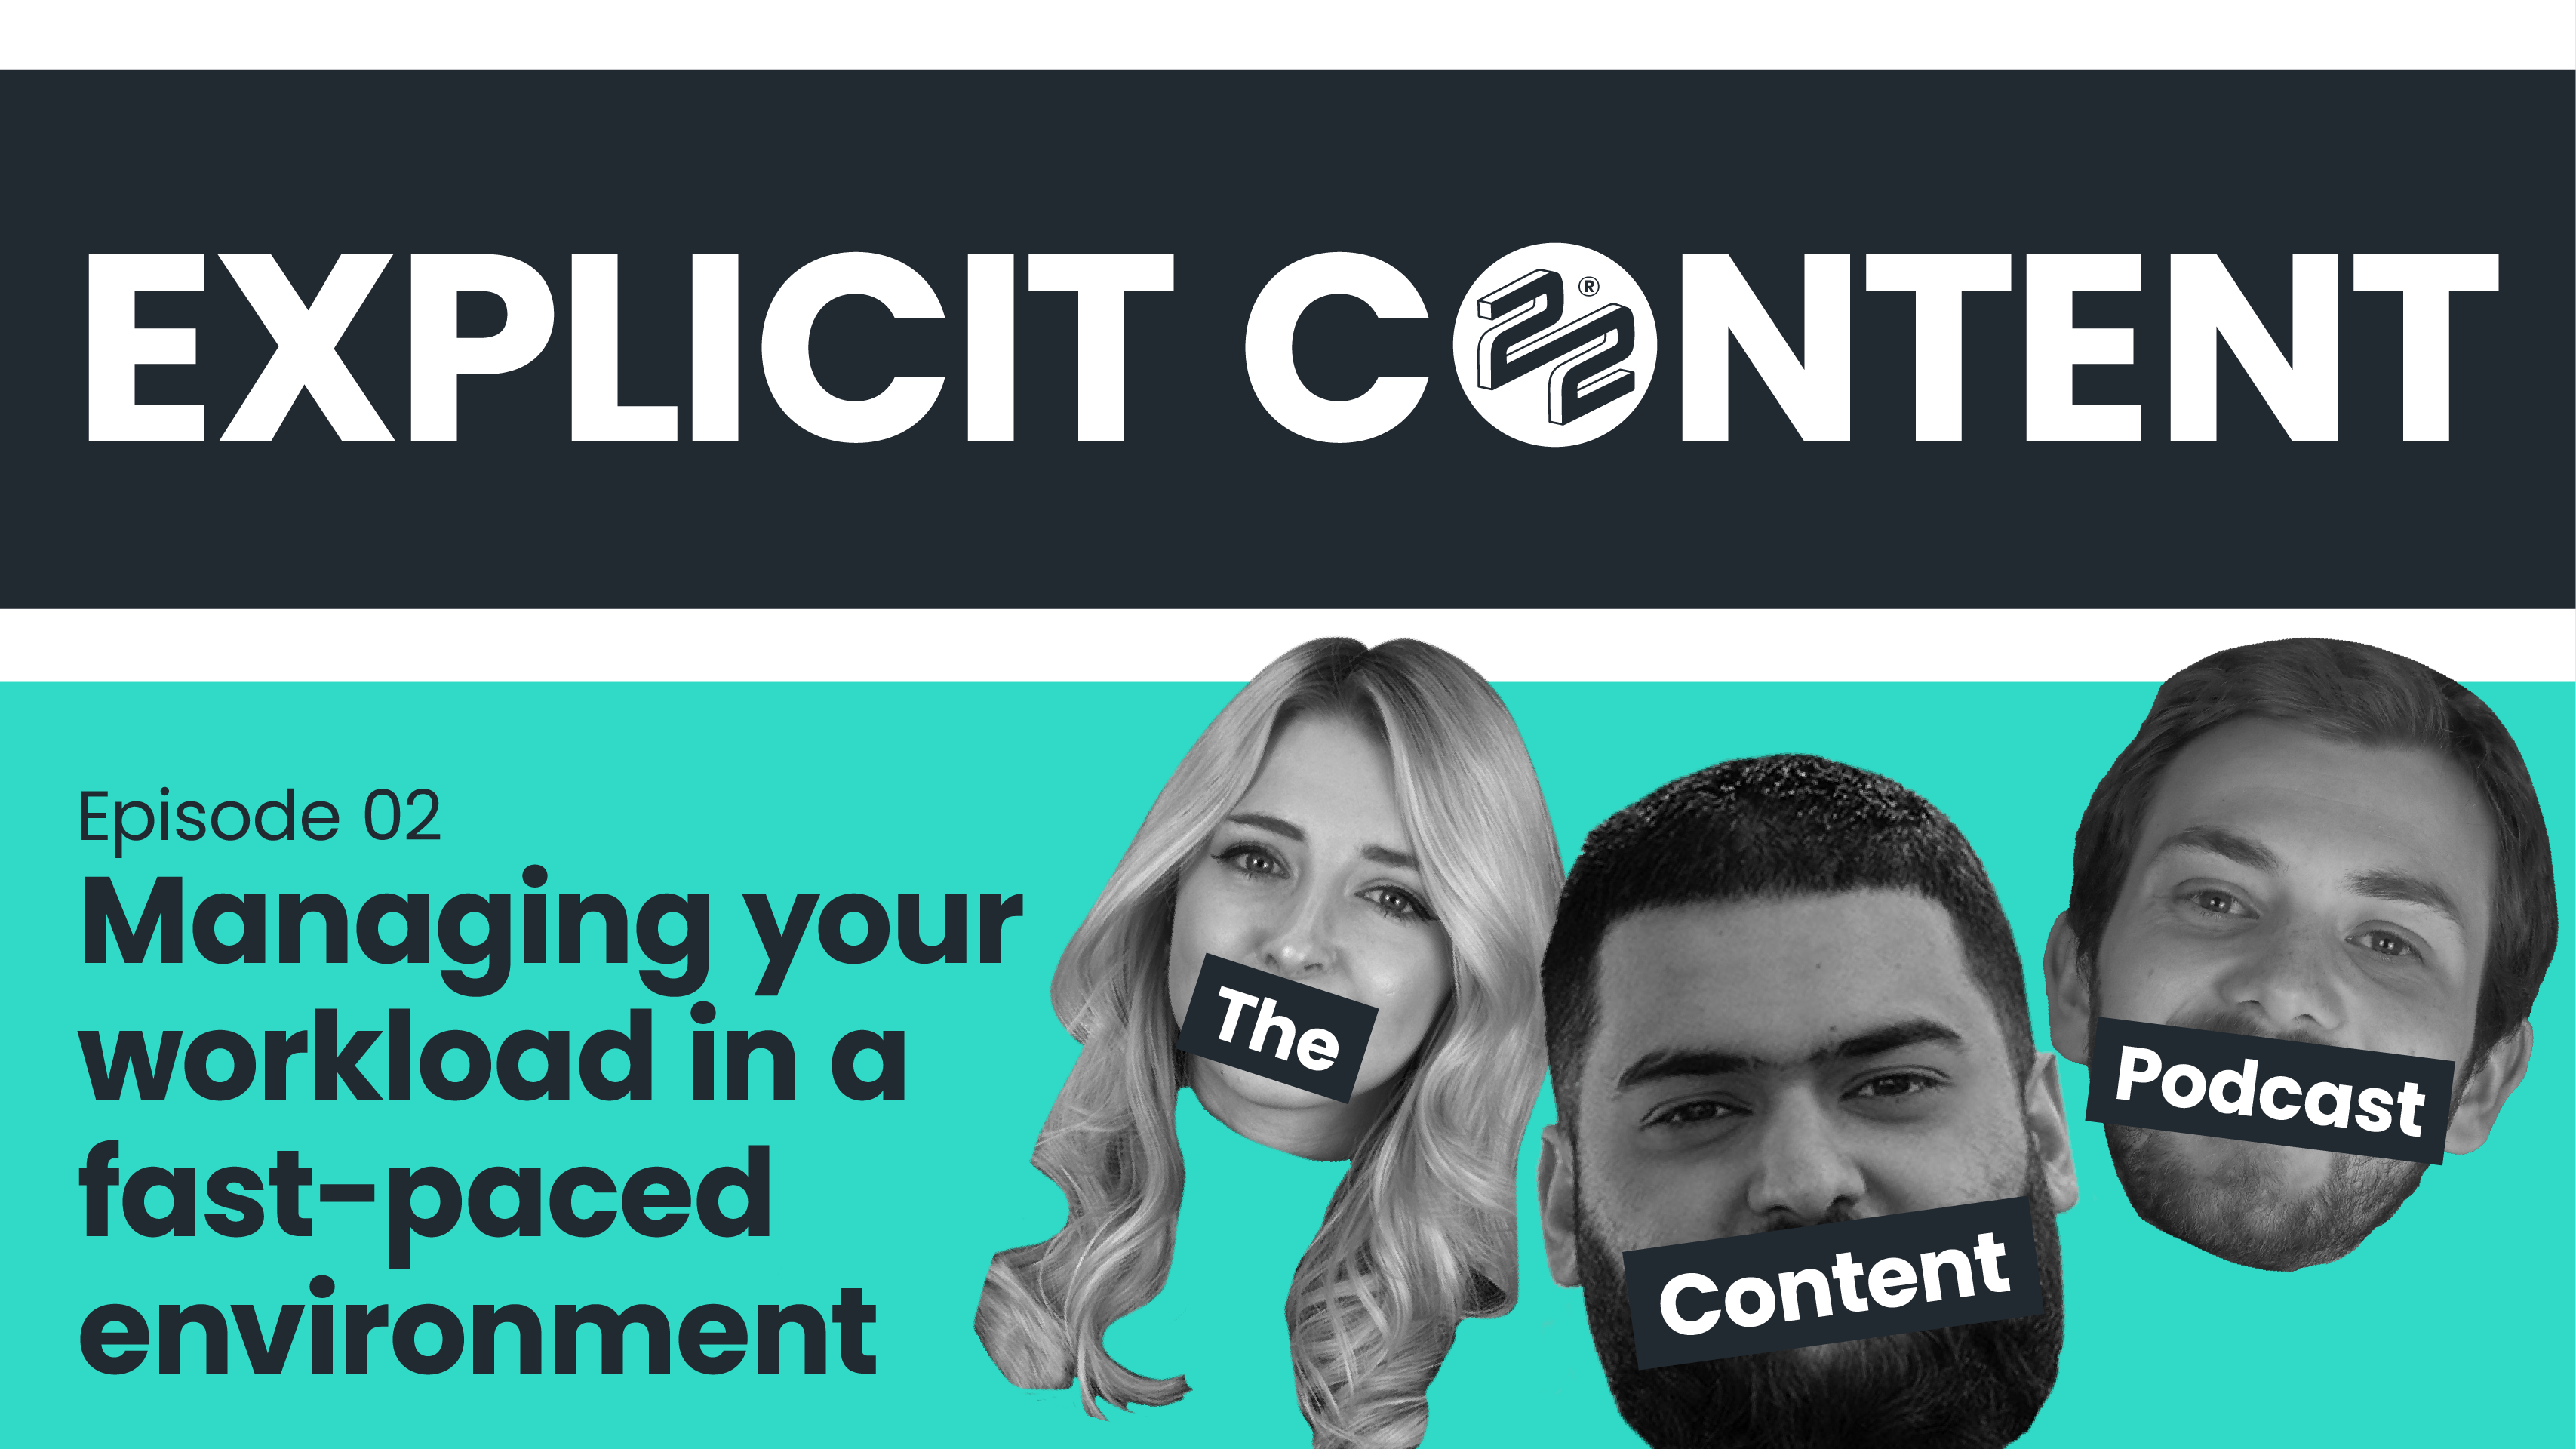 EXPLICIT CONTENT: How to manage your workload in a fast-paced working environment